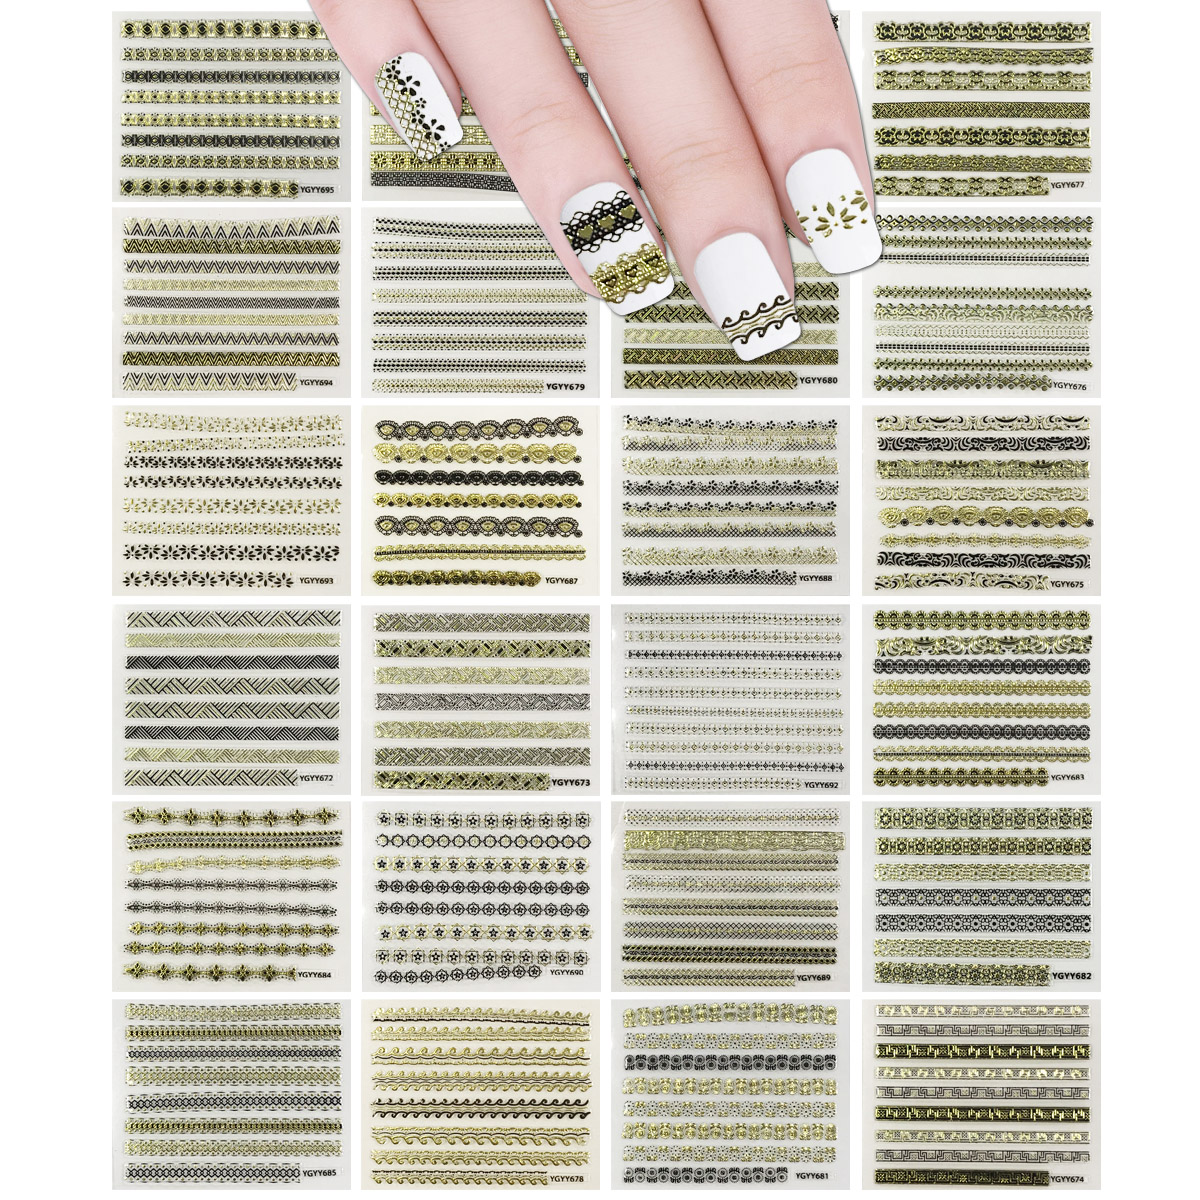 ALLYDREW 24 Sheets Gold, Silver & Black Nail Strips Nail Stickers Nail Art Set - Gold & Black Nail Strips